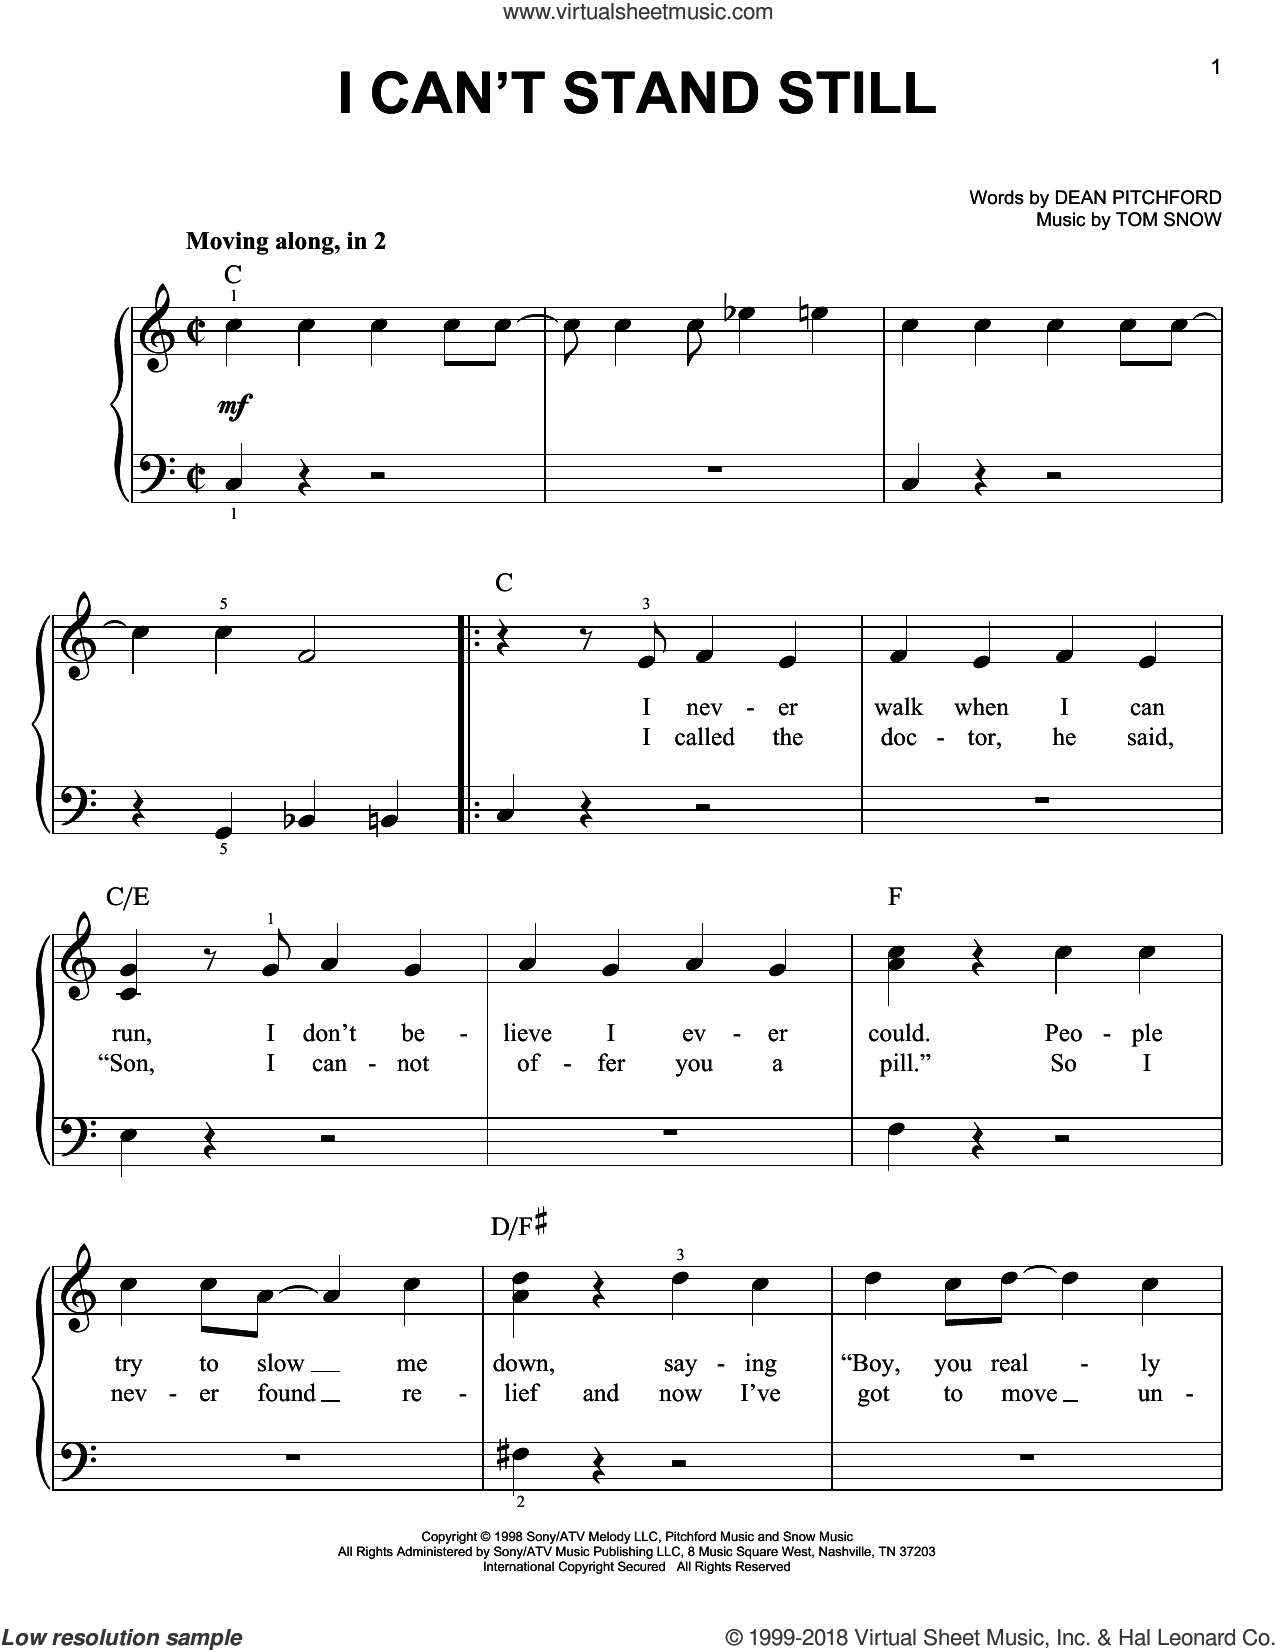 I Can't Stand Still sheet music for piano solo by Dean Pitchford and Tom Snow. Score Image Preview.